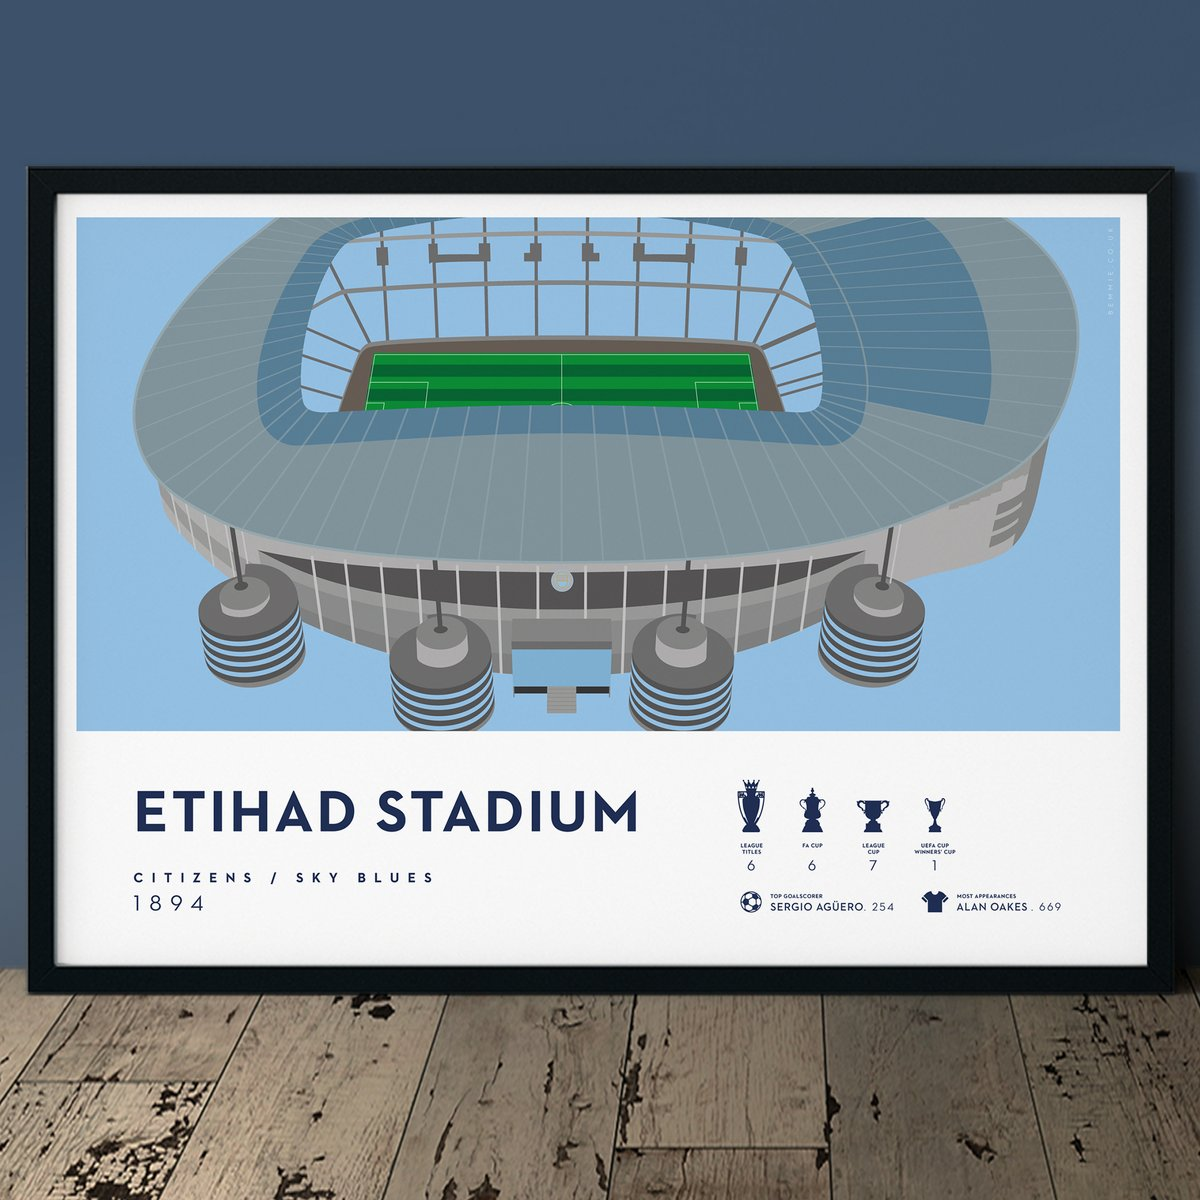 New Man City Etihad Stadium Print  Full stadium view, including club records and major honours . Available in 3 sizes, with free UK shipping.  http://ow.ly/sLWf50AkFIk #manchestercityfc #mancity #mancityfc #skyblues #mancityfans //cc @City_Xtra @ManCity_MCFCpic.twitter.com/fhgTVuB90S